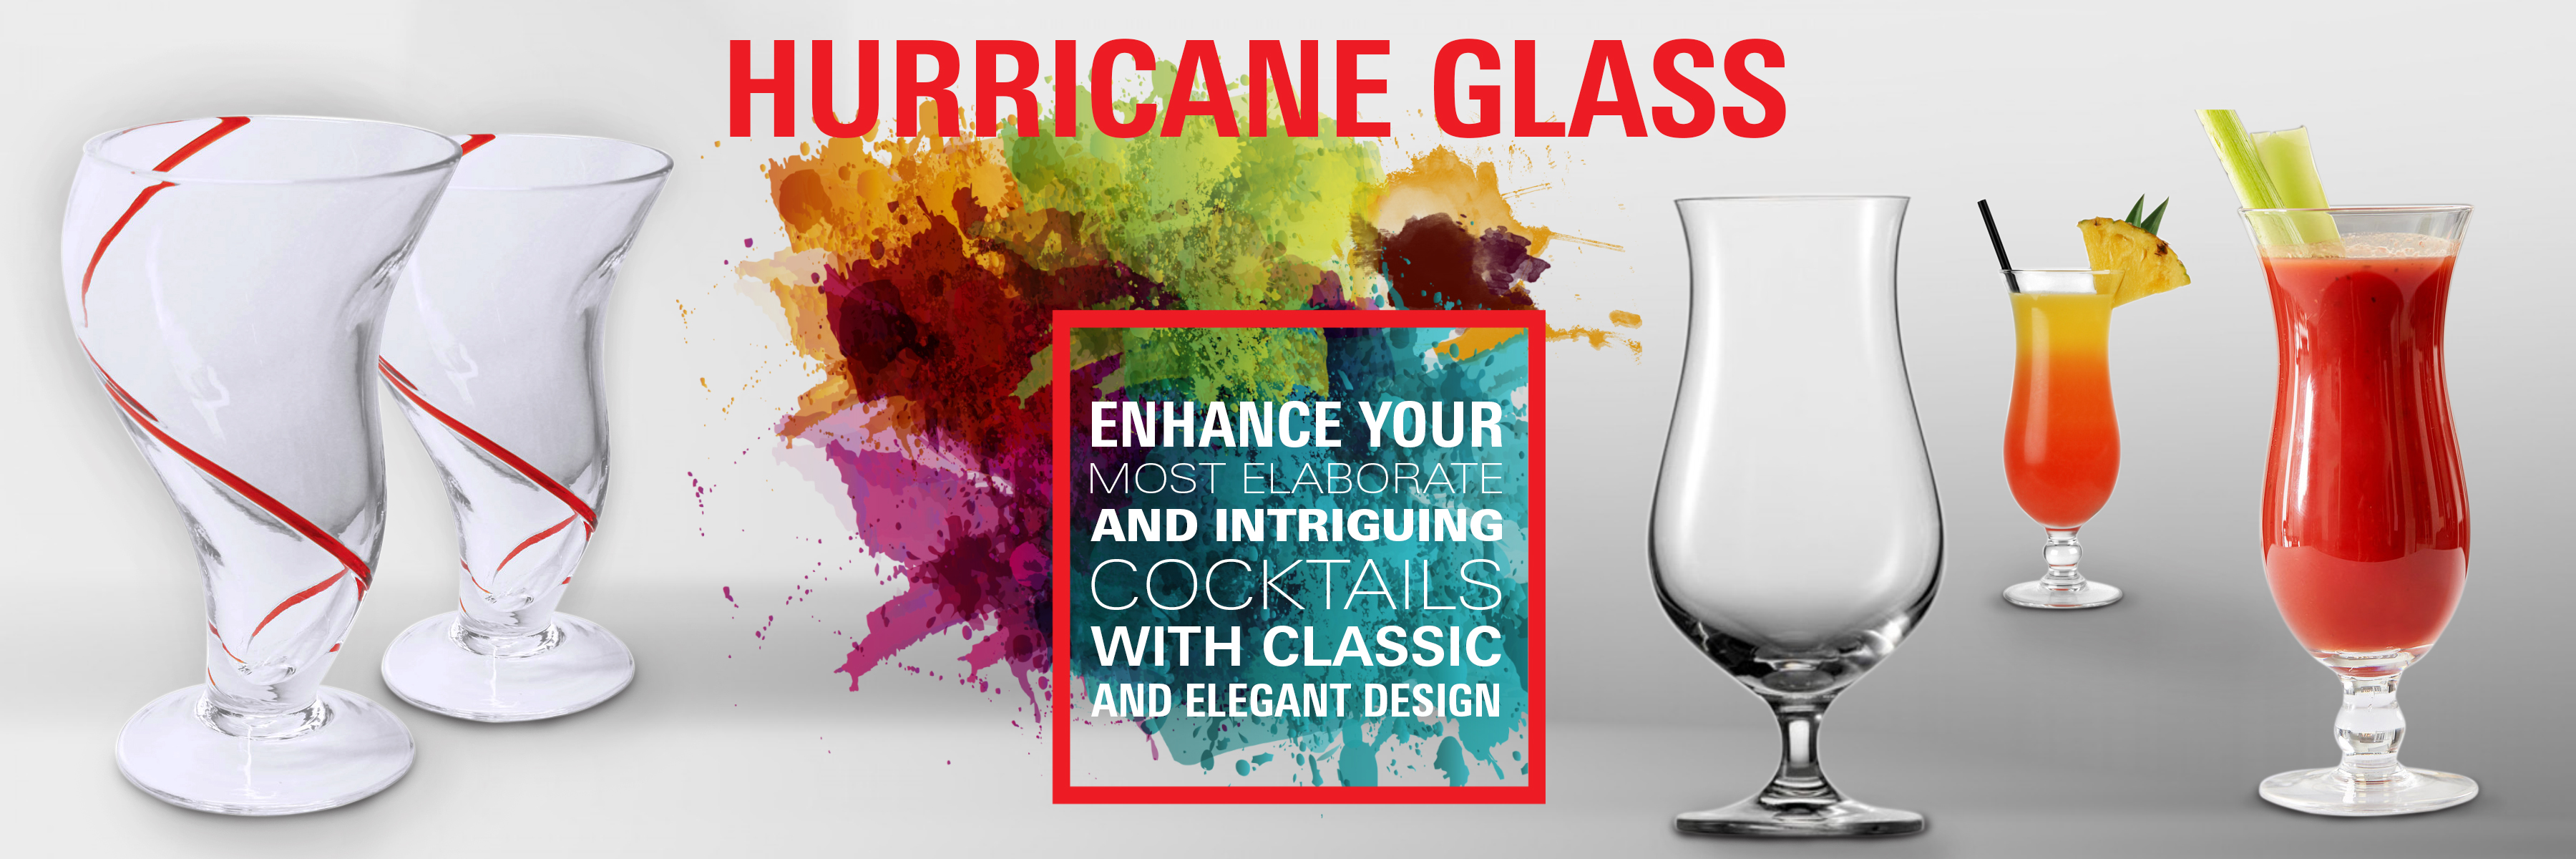 Hurricane Glass